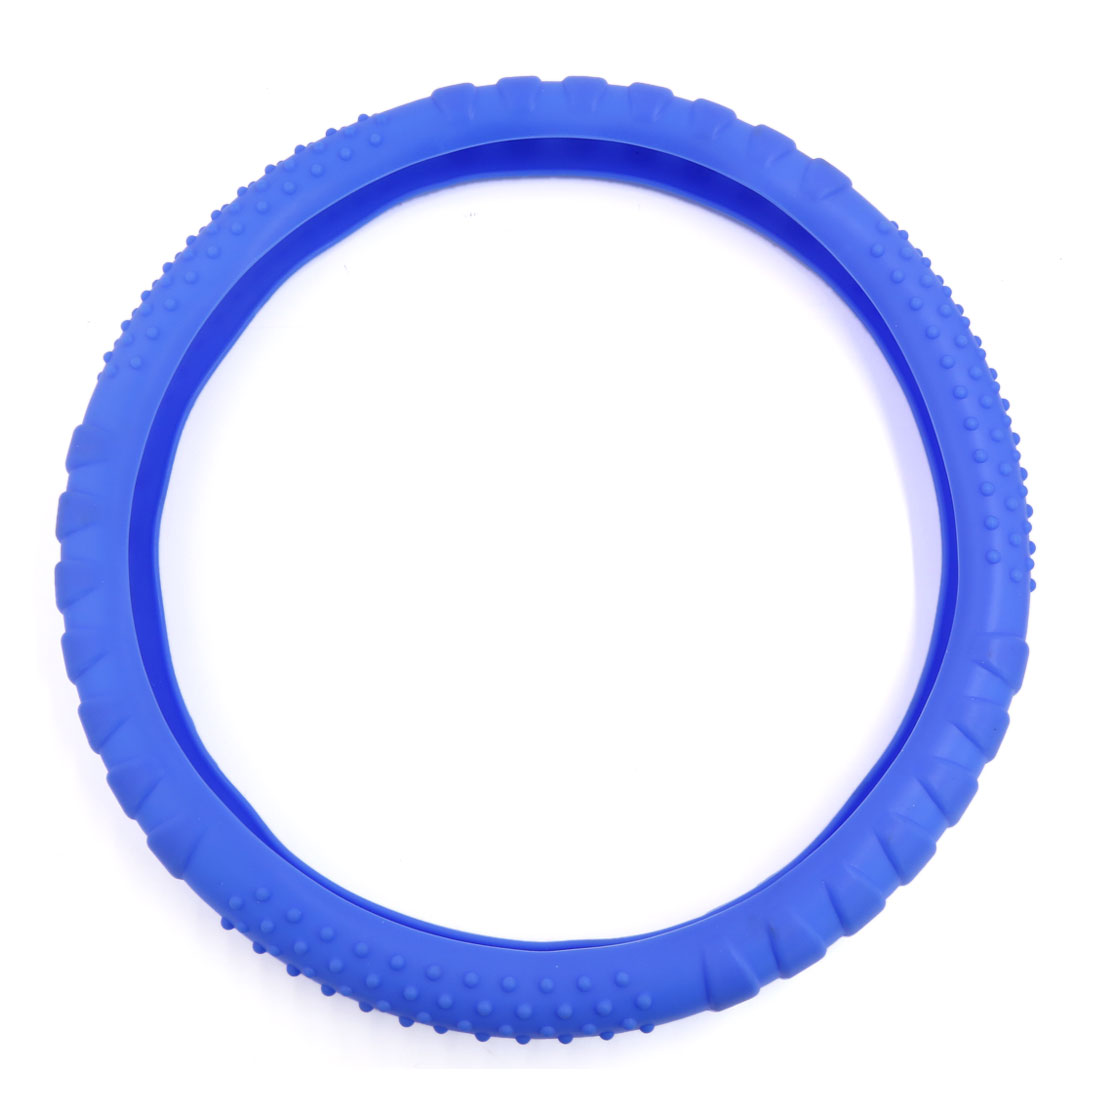 34cm Outer Dia Blue Soft Silicone Steering Wheel Cover Protector for Car